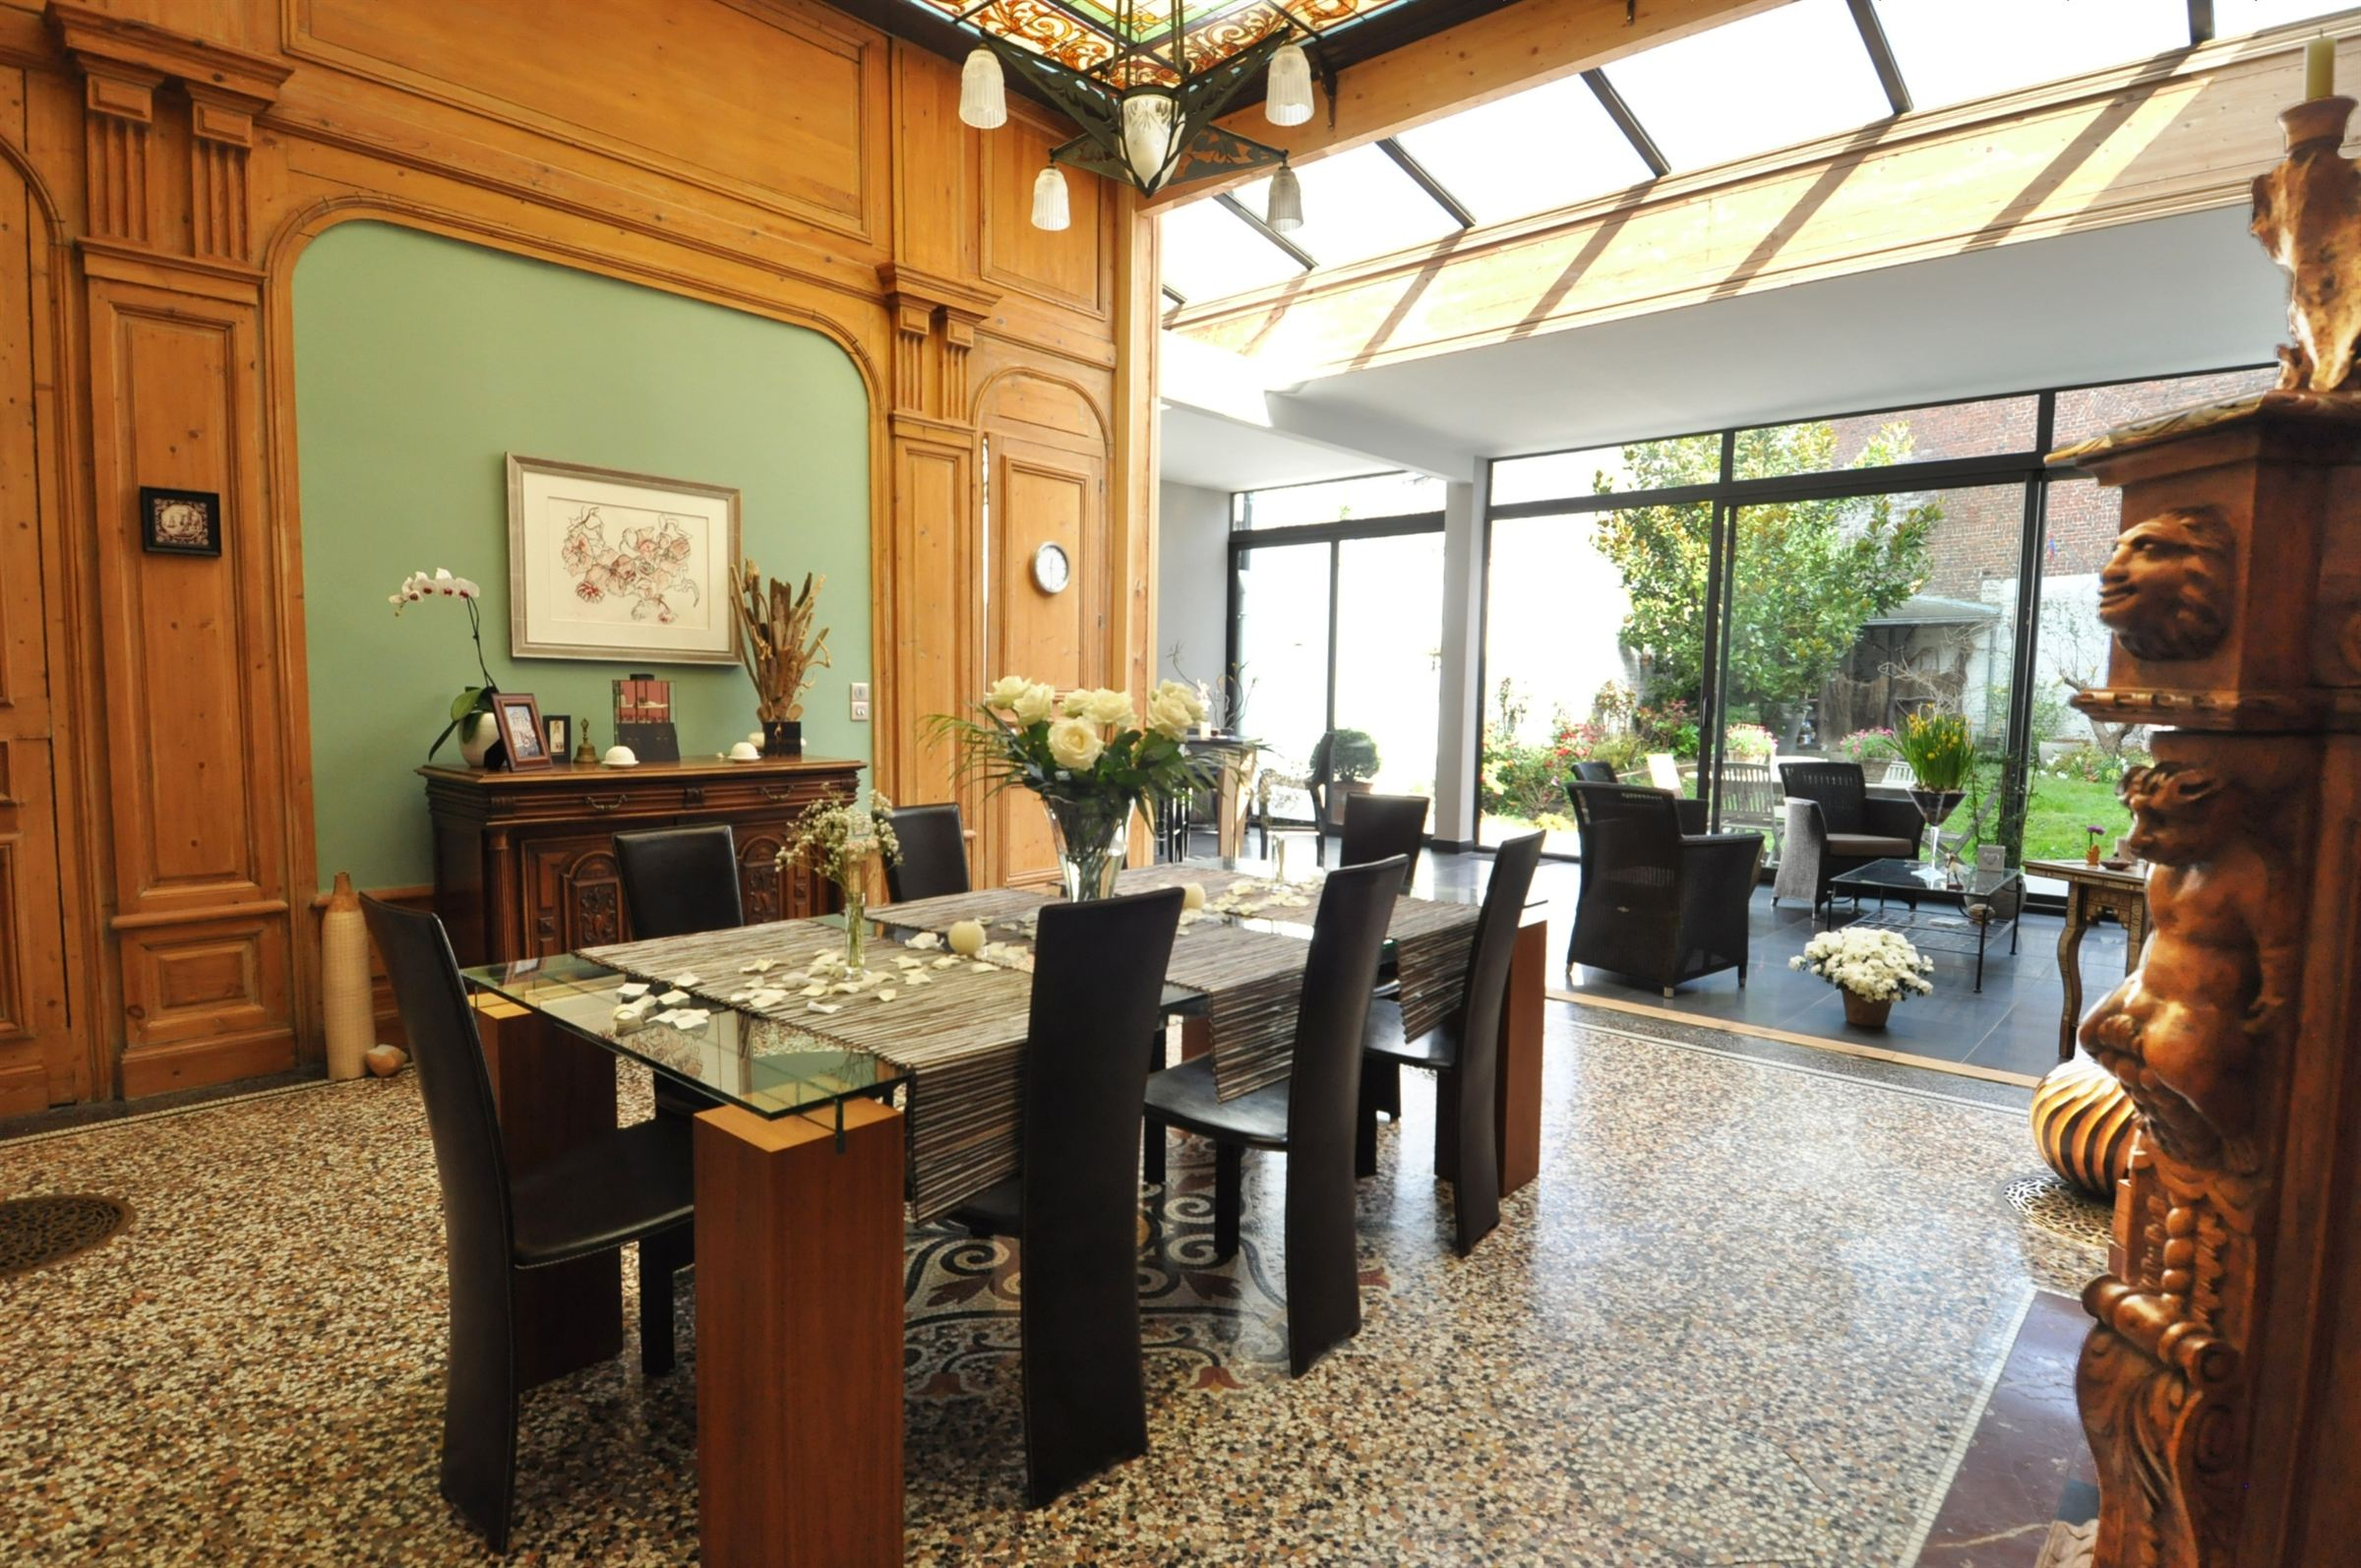 Property For Sale at Lille near Porte de Paris, Wonderful Family House 408 m2 hab. 9 bedrooms